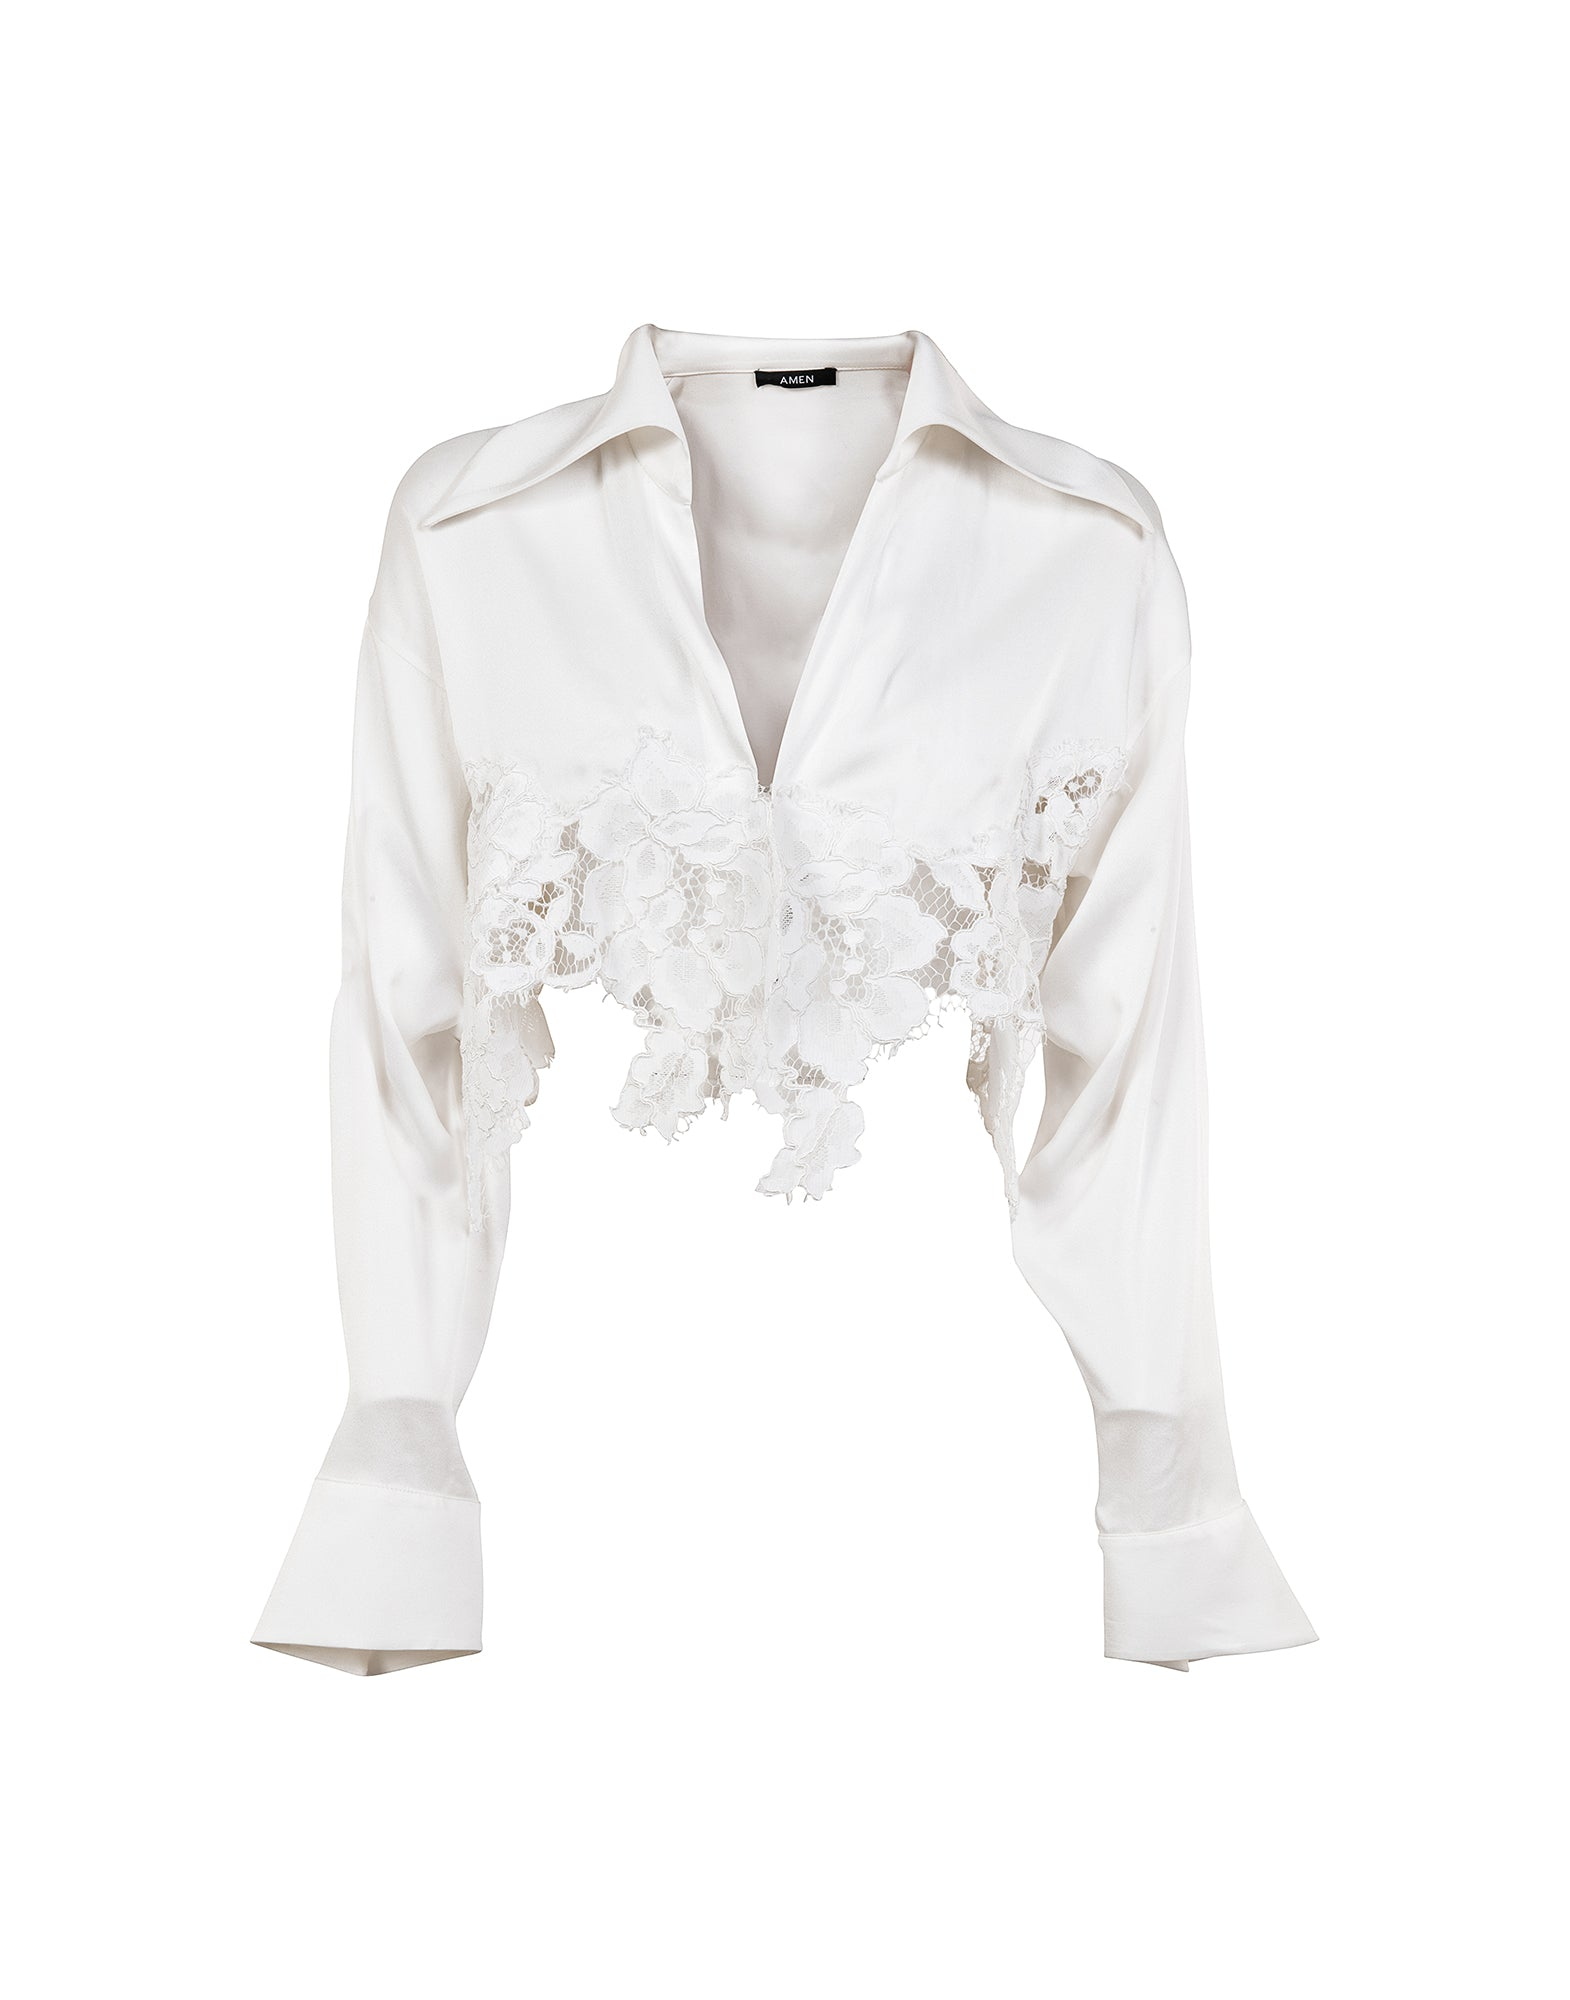 Cropped shirt in satin and lace - NEW IN